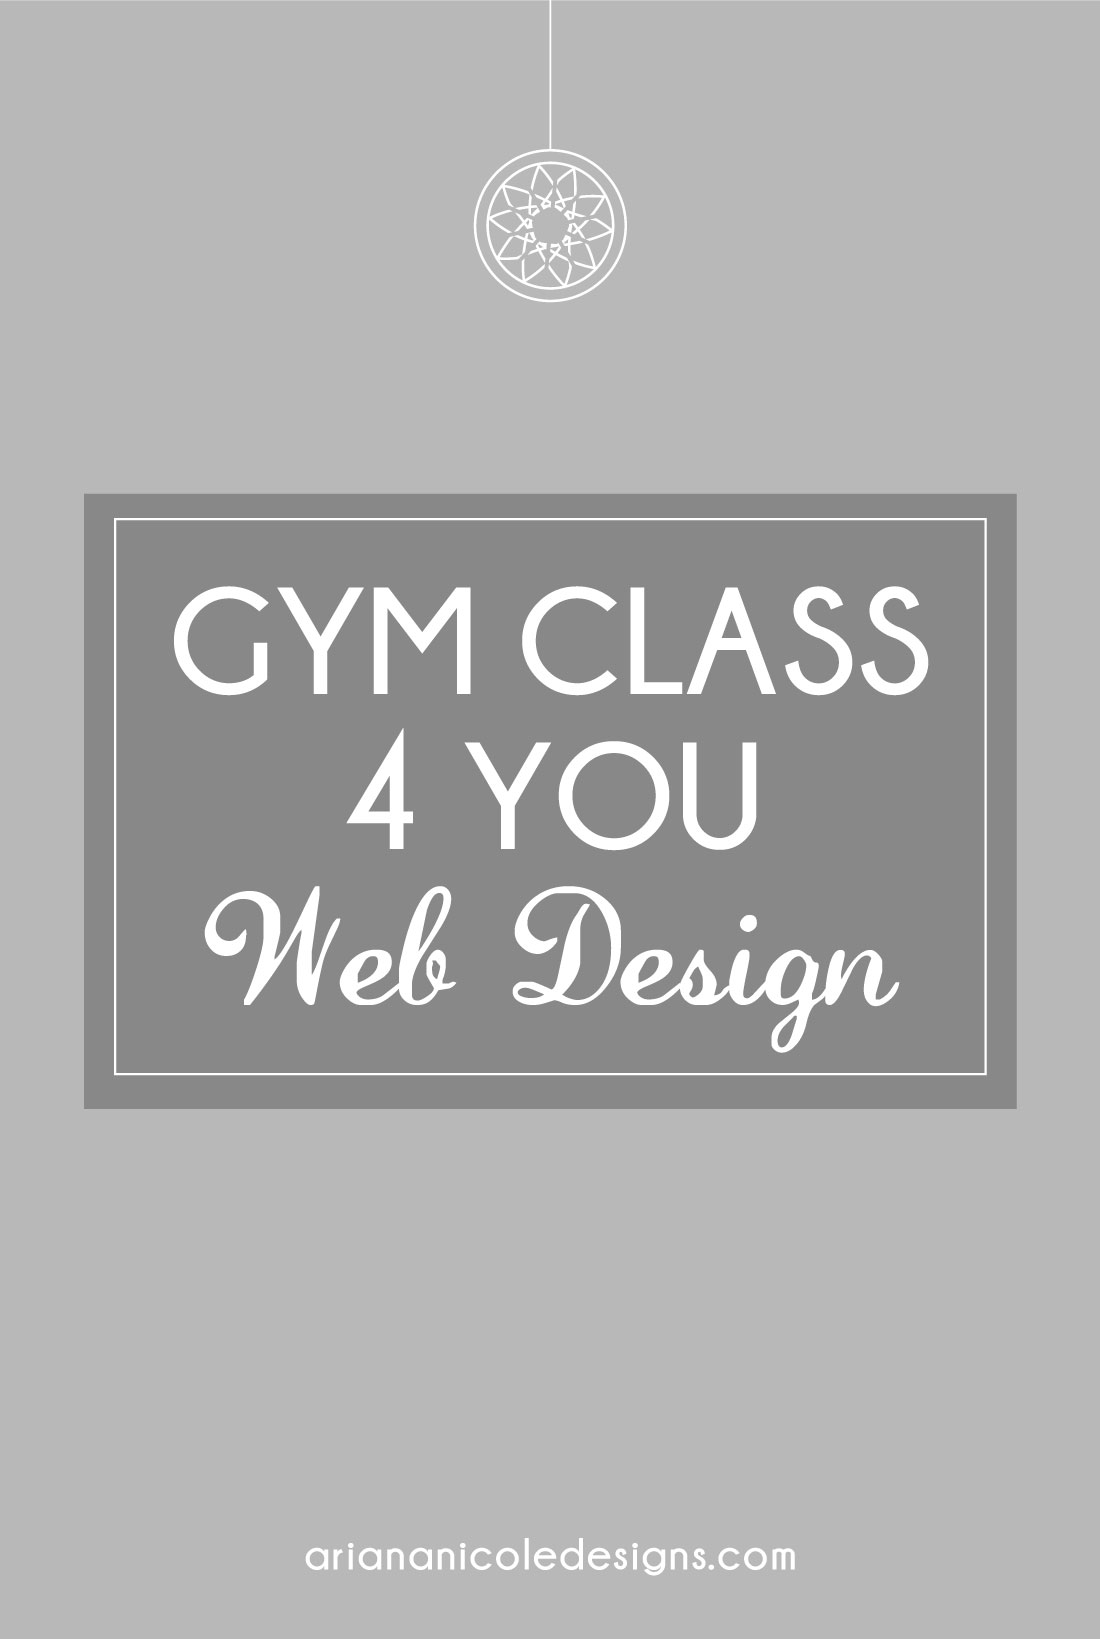 Gym_Class_4_You_Web_Design